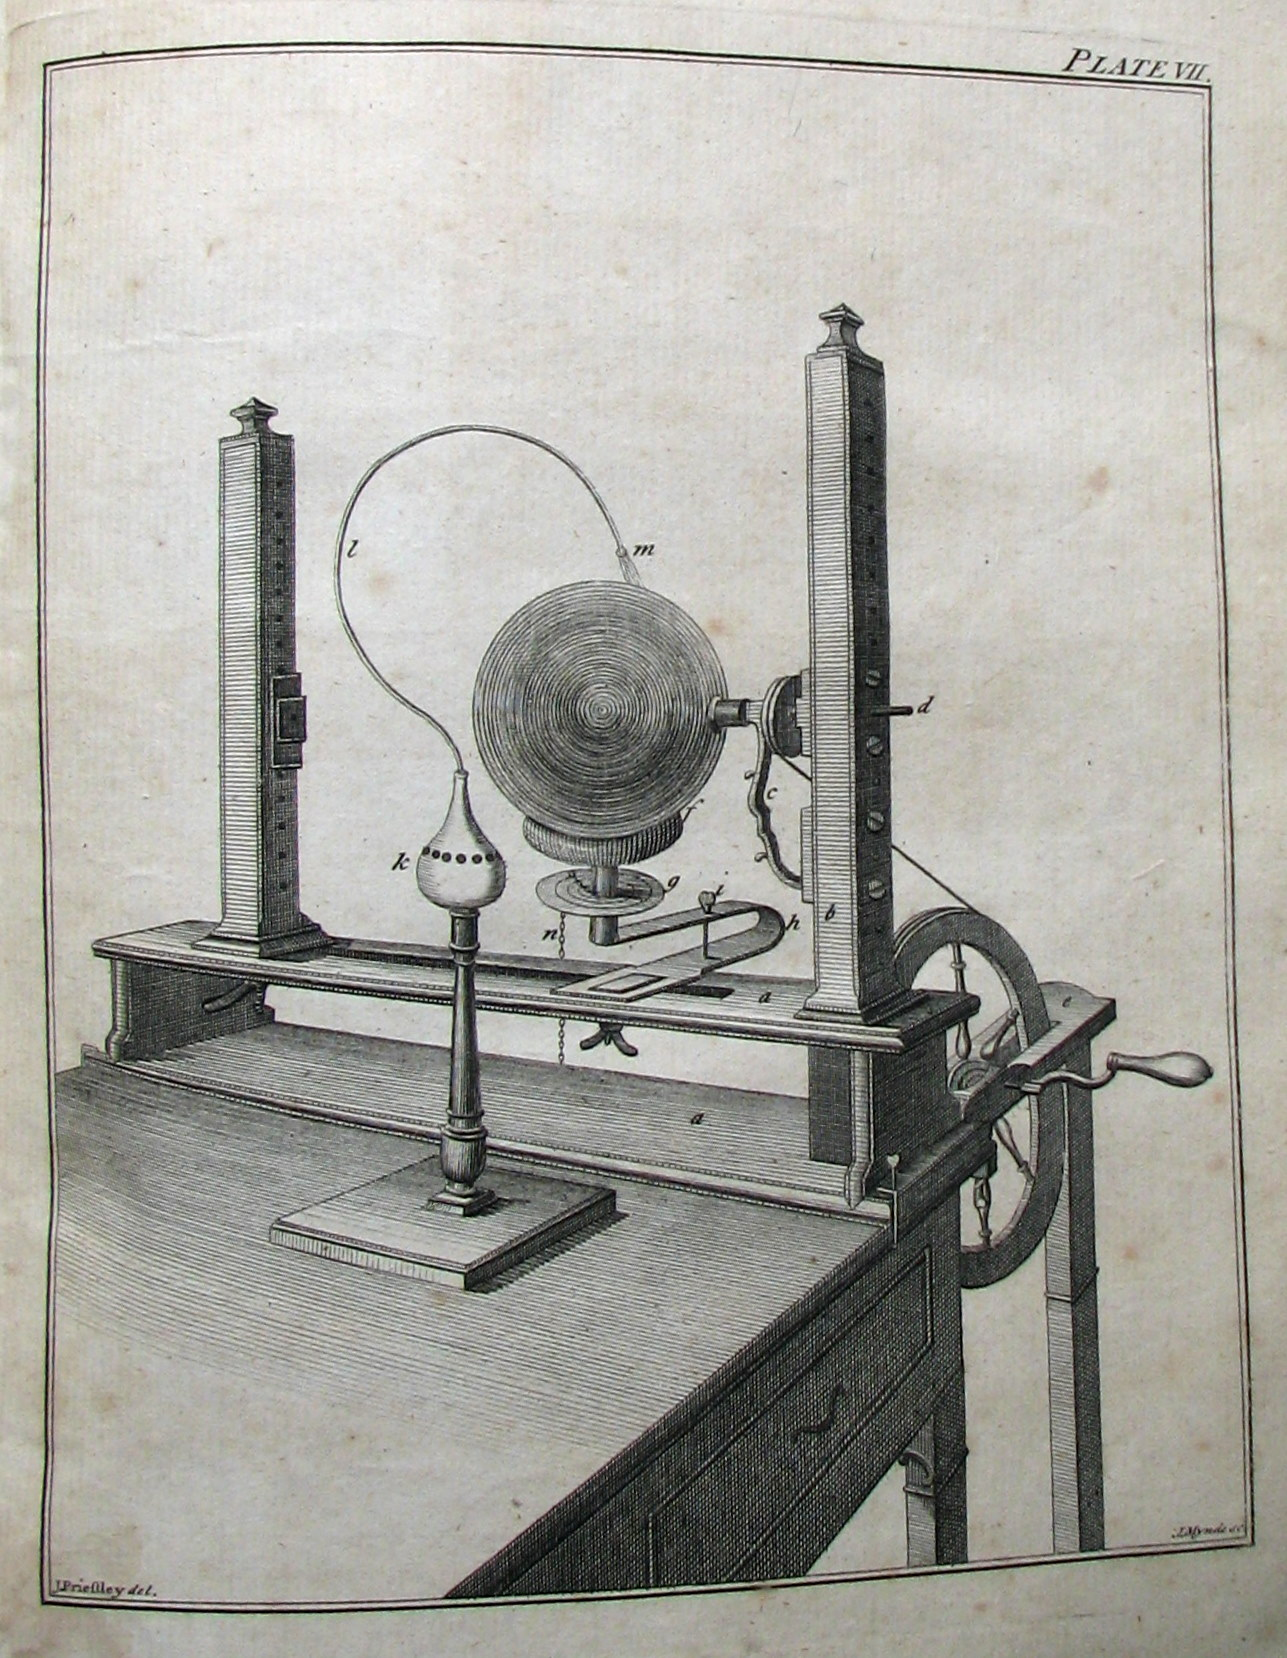 http://upload.wikimedia.org/wikipedia/commons/c/c3/Familiar_Introduction_to_Electricity_by_Joseph_Priestly,_plate_7.jpg